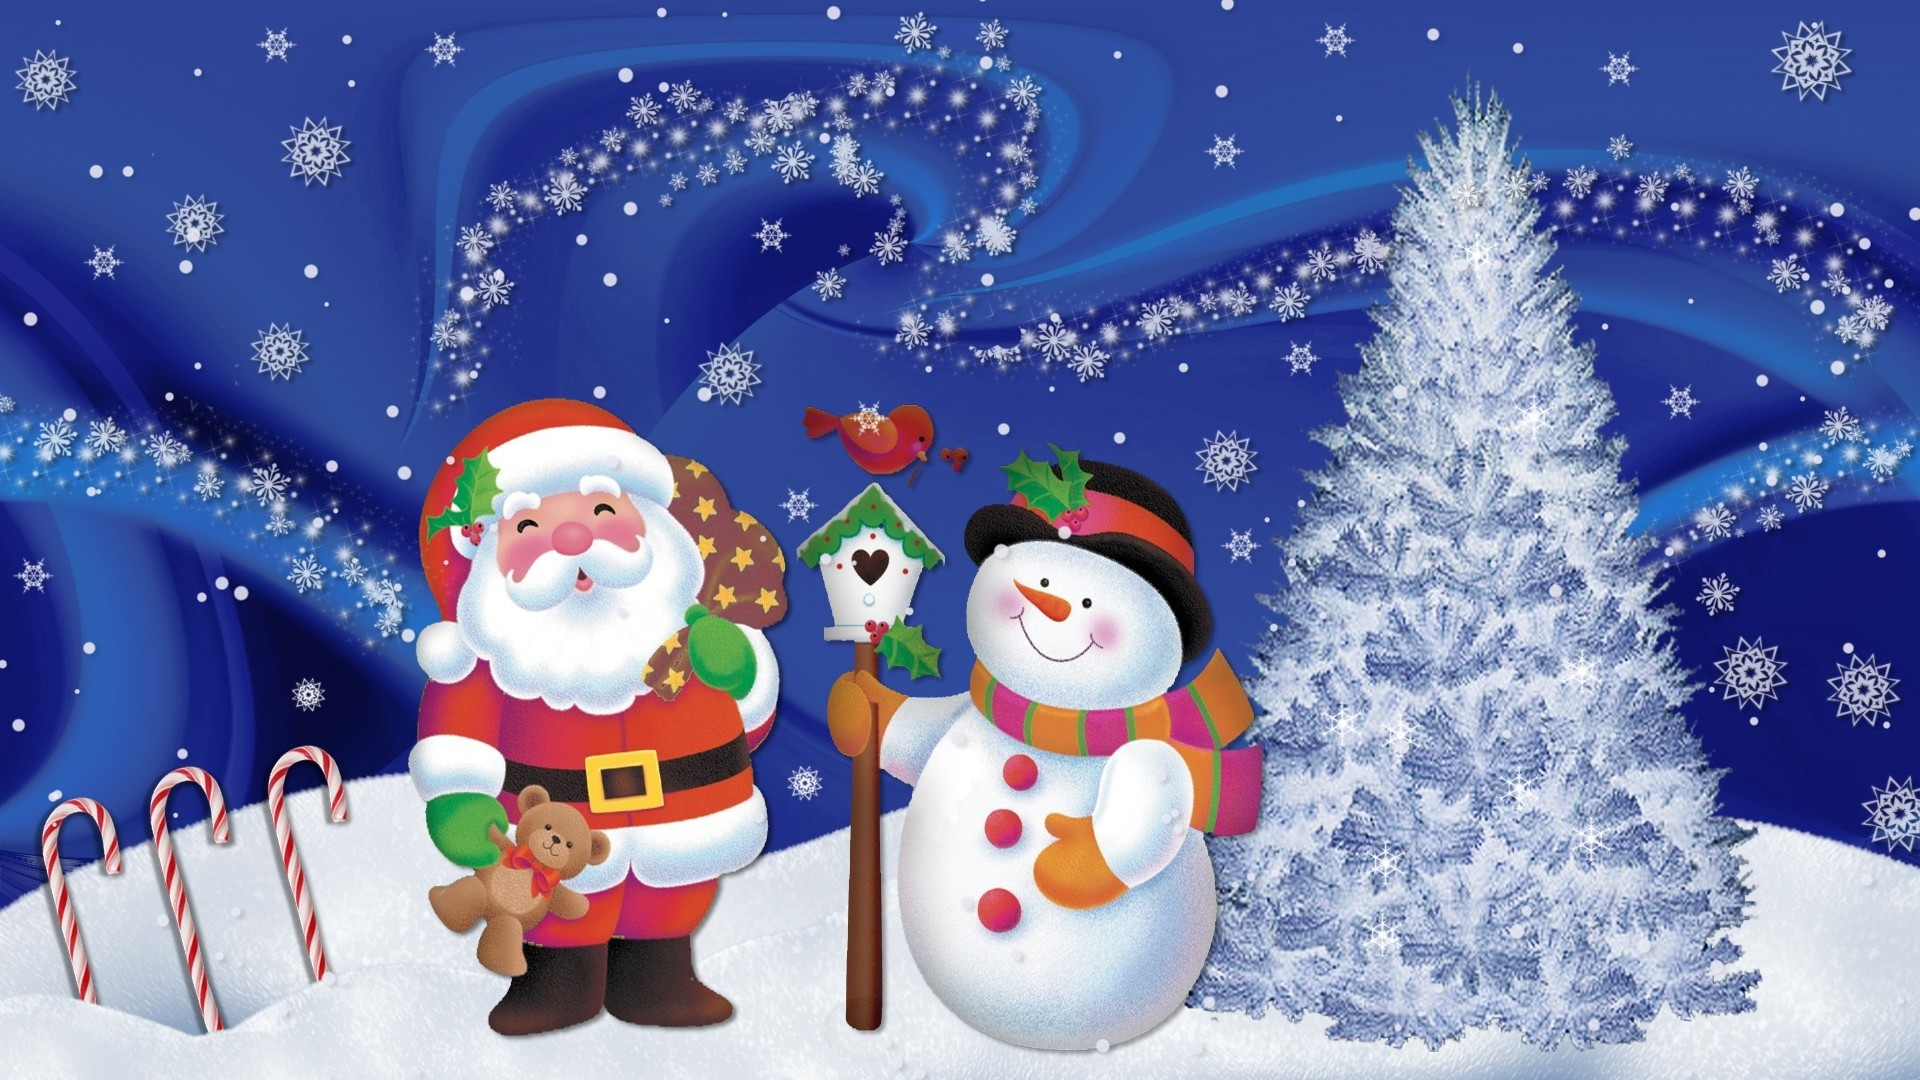 1920x1080 Christmas Wallpapers Animated Free